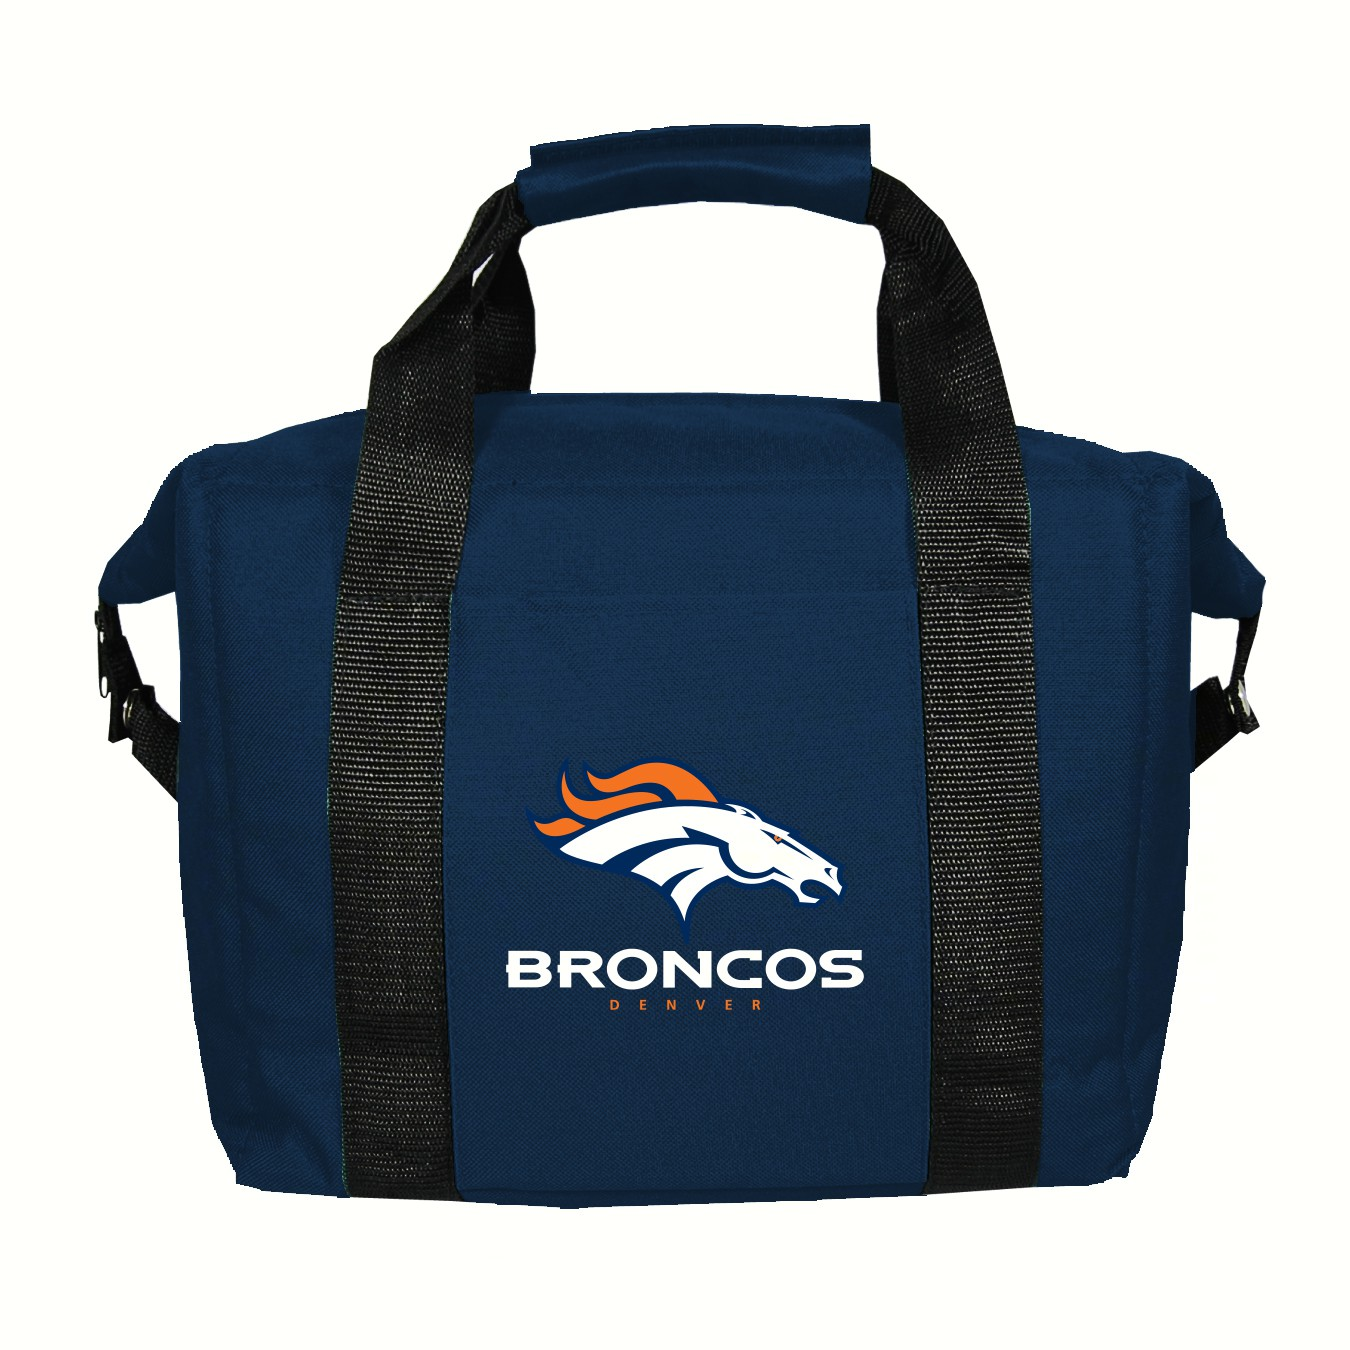 12 pack Kooler Bag - Denver Broncos